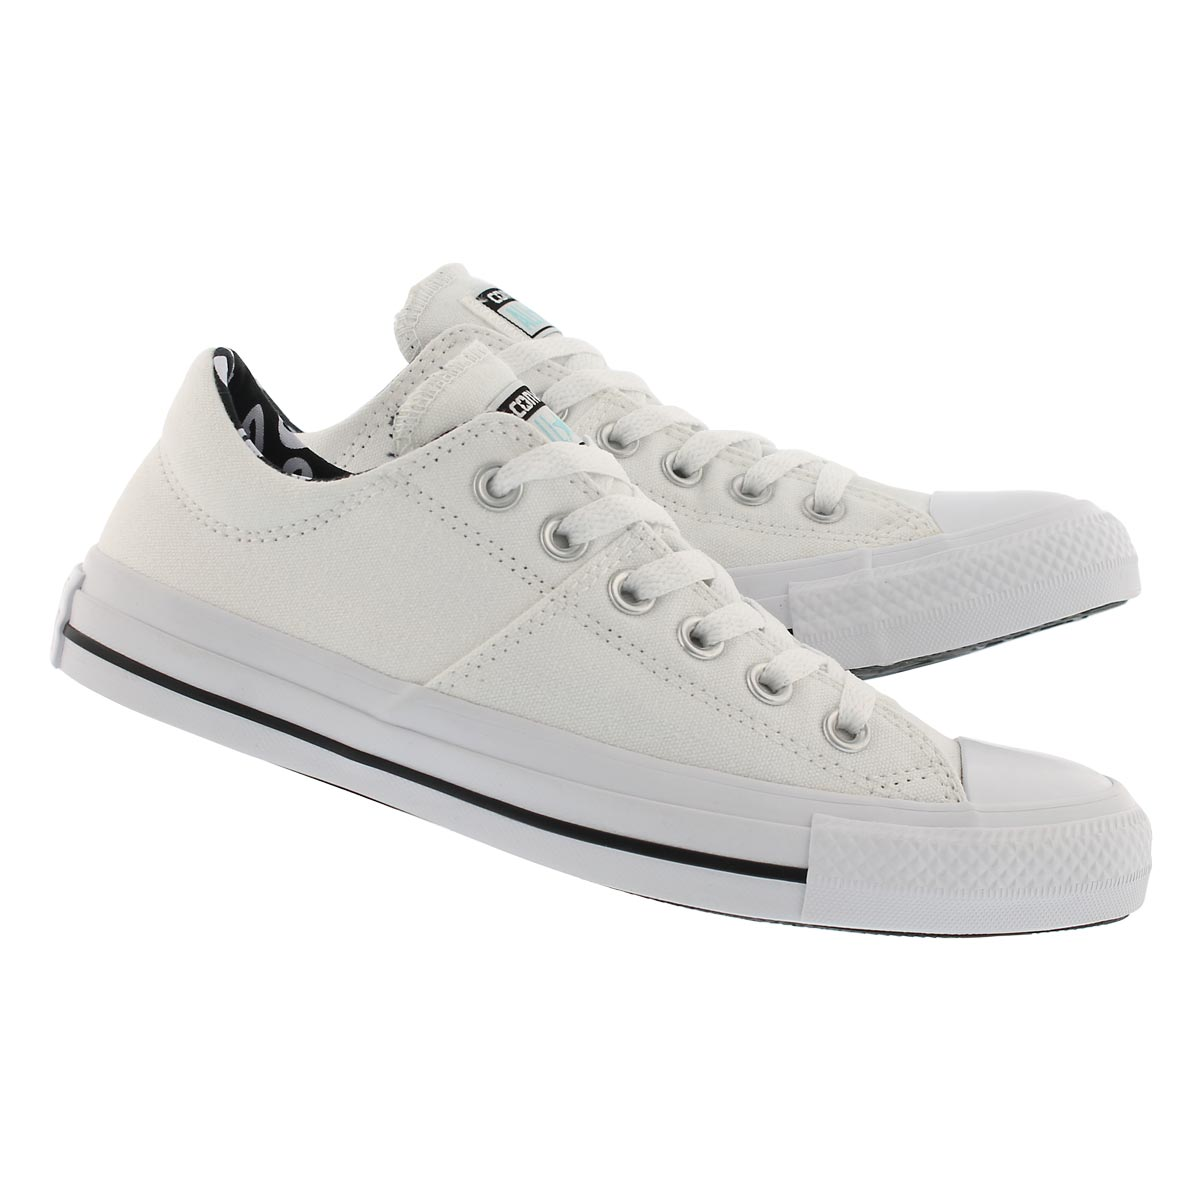 Lds CT AS Madison wht/blk sneaker